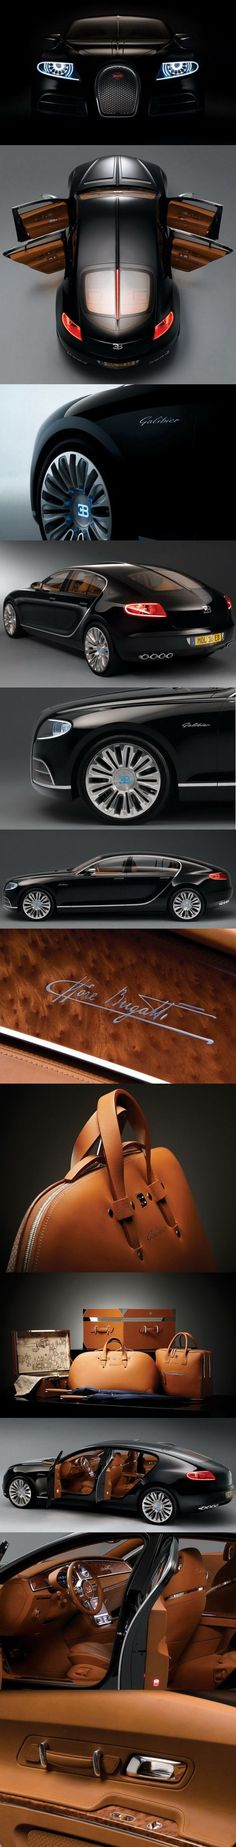 View detailed pictures that accompany our #Bugatti 16C Galibier concept in #black article with close-up photos of exterior and interior features. (22 photos)